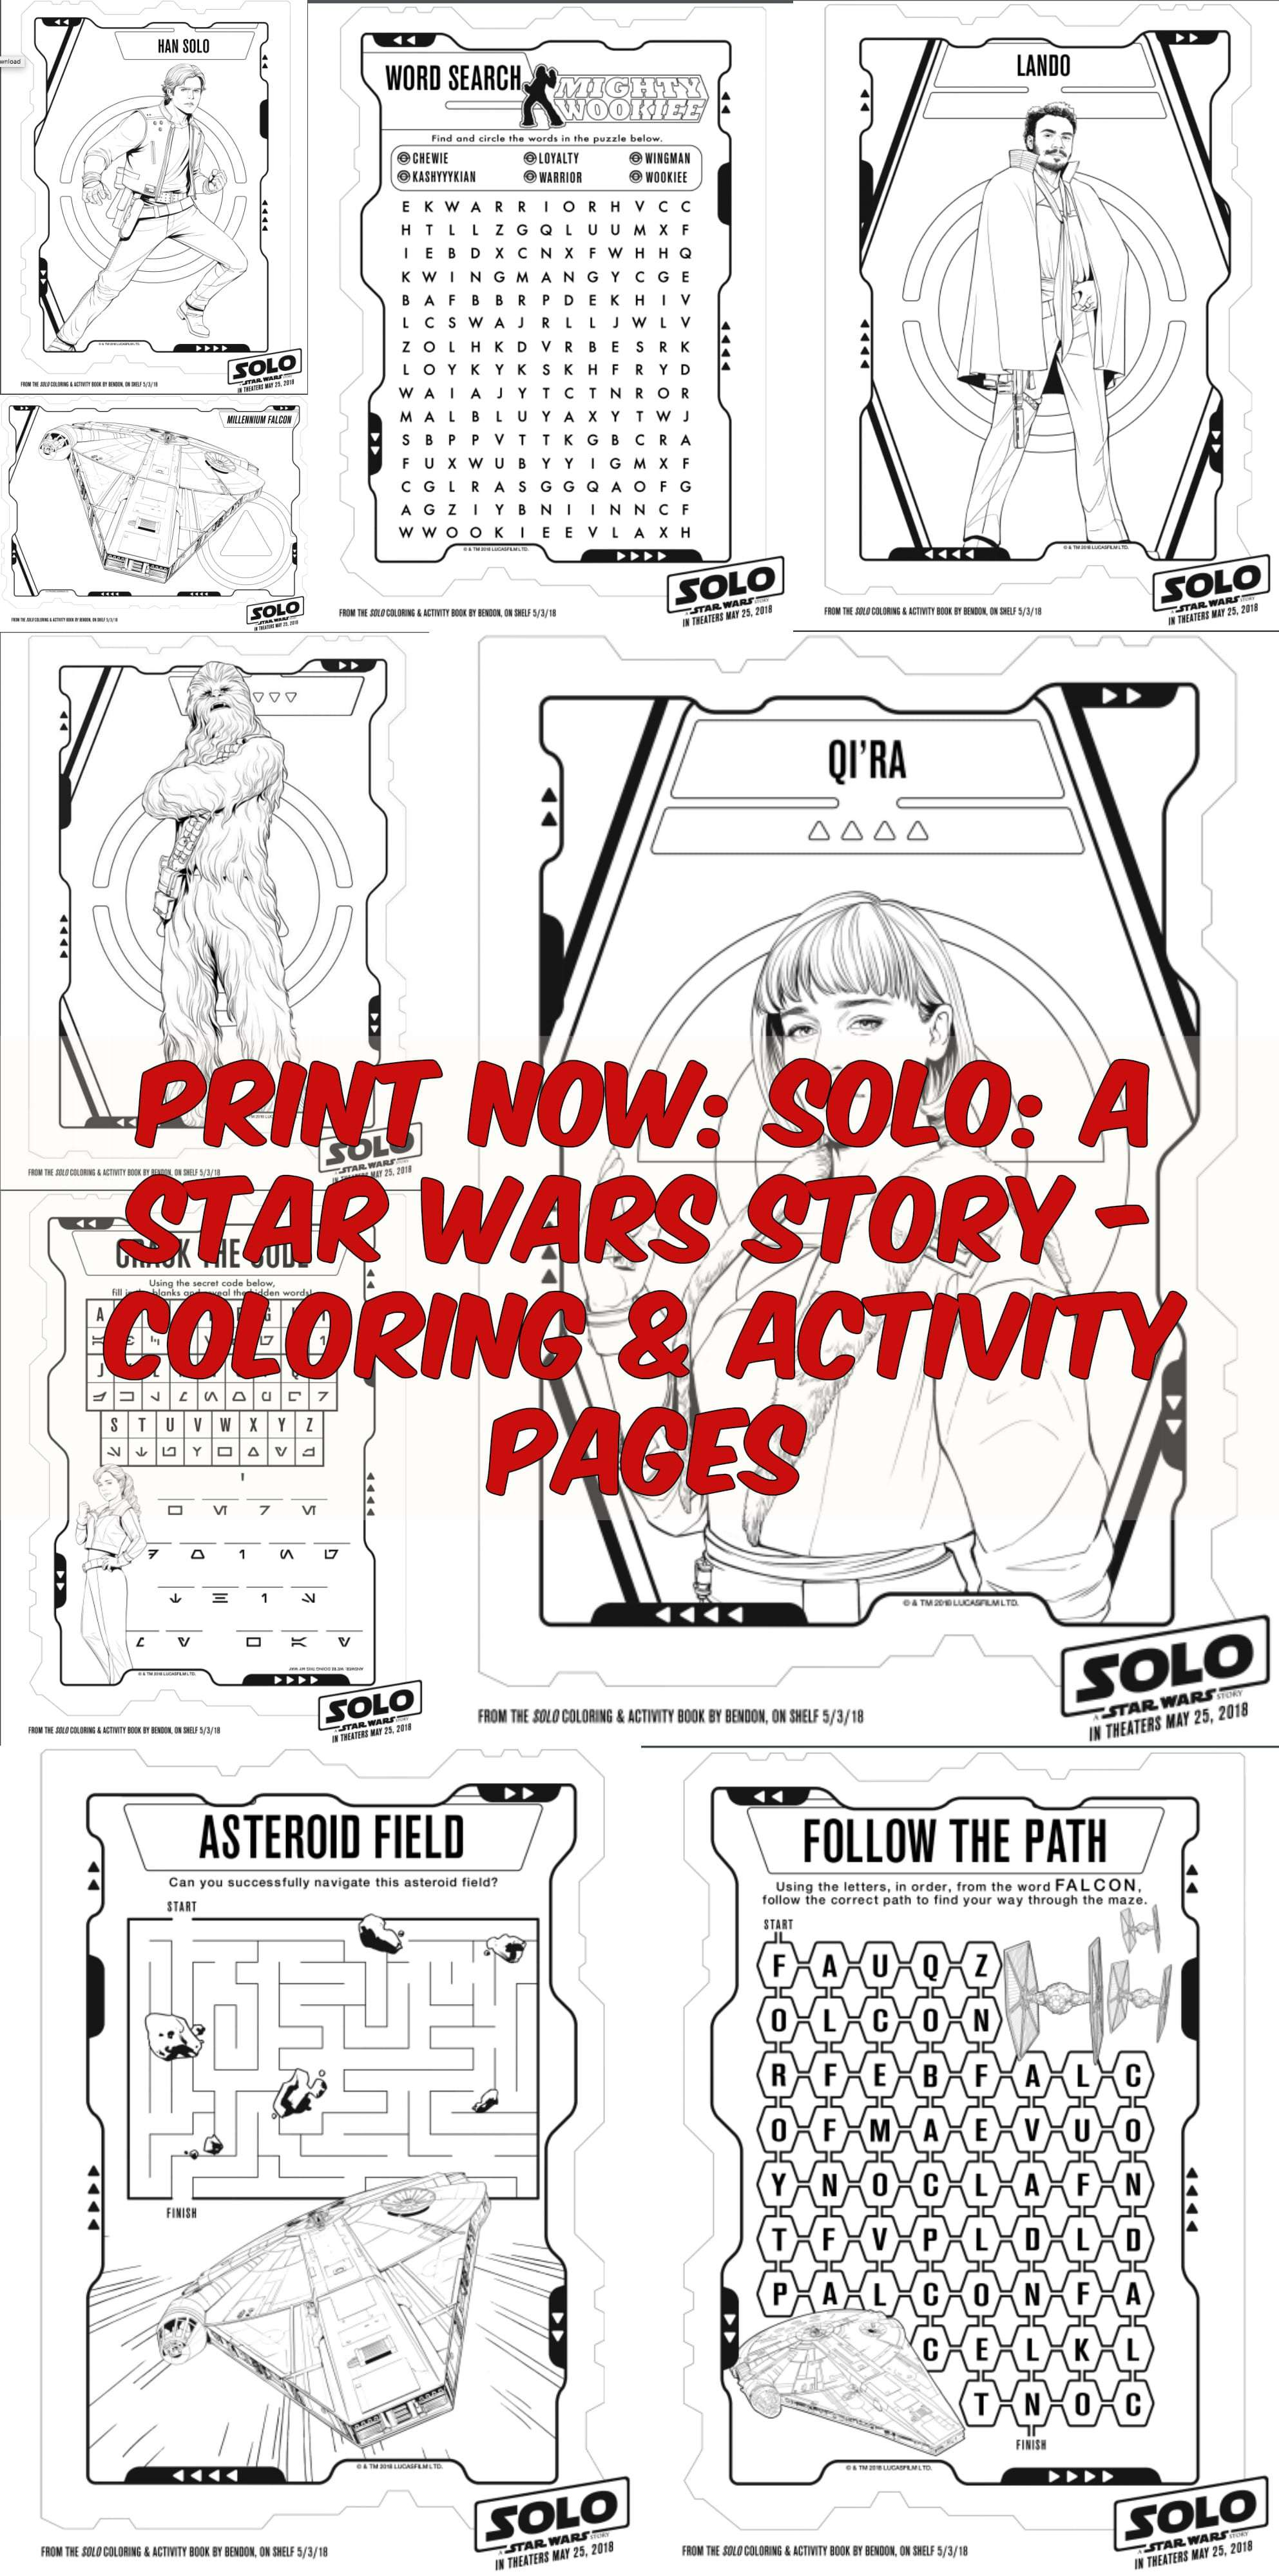 Print Now SOLO A STAR WARS STORY Coloring Activity